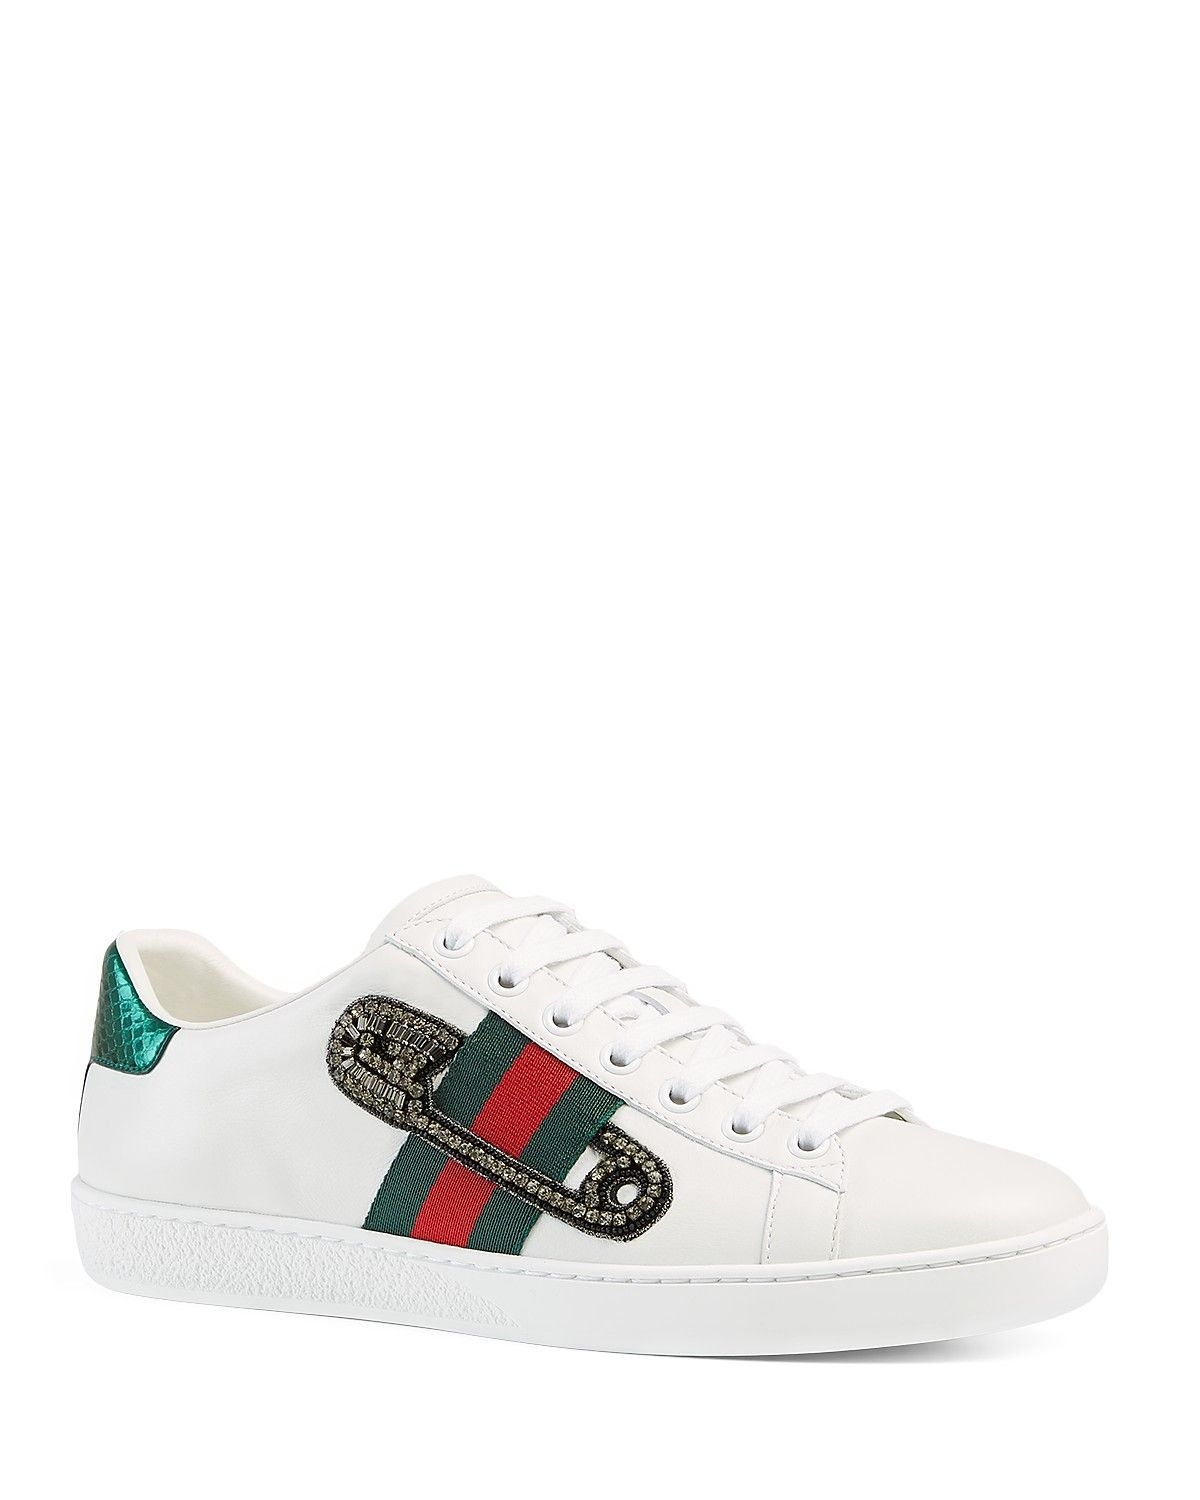 Gucci Running Shoes Women